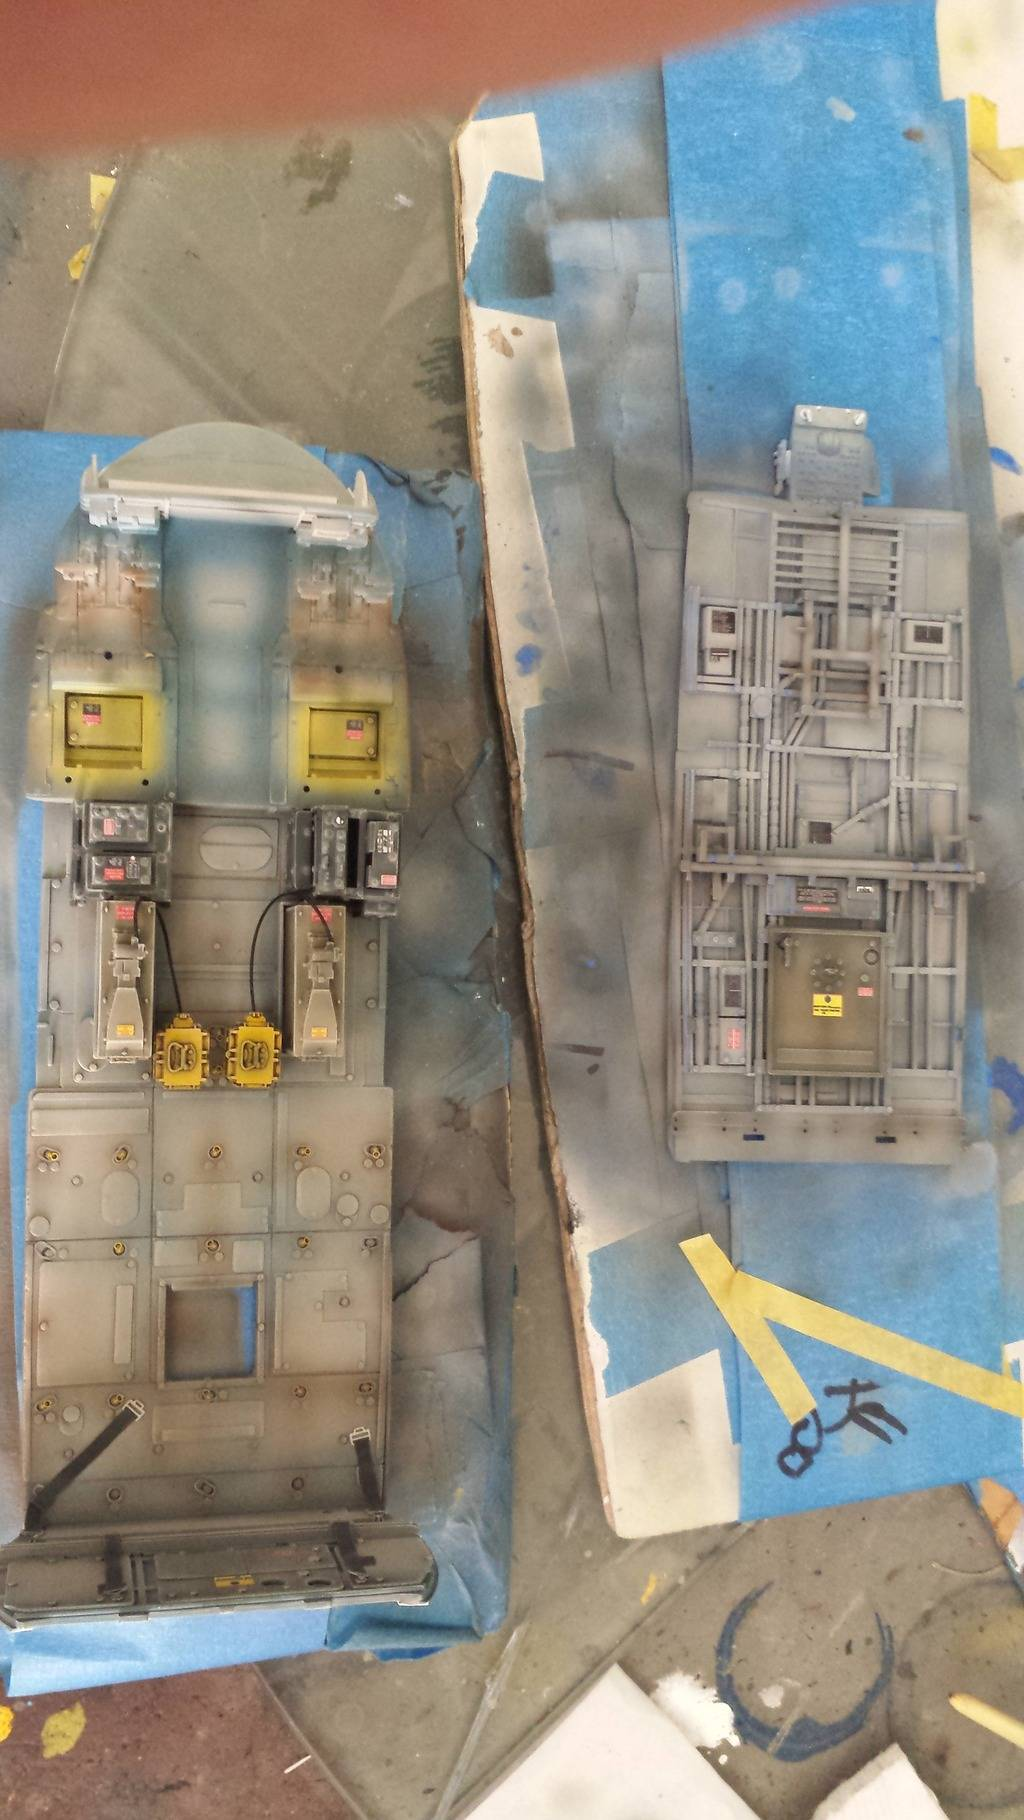 Seahawk helicopter Academy 1/35  diorama. - Page 2 20150418_141411_zpsfnuaprmq